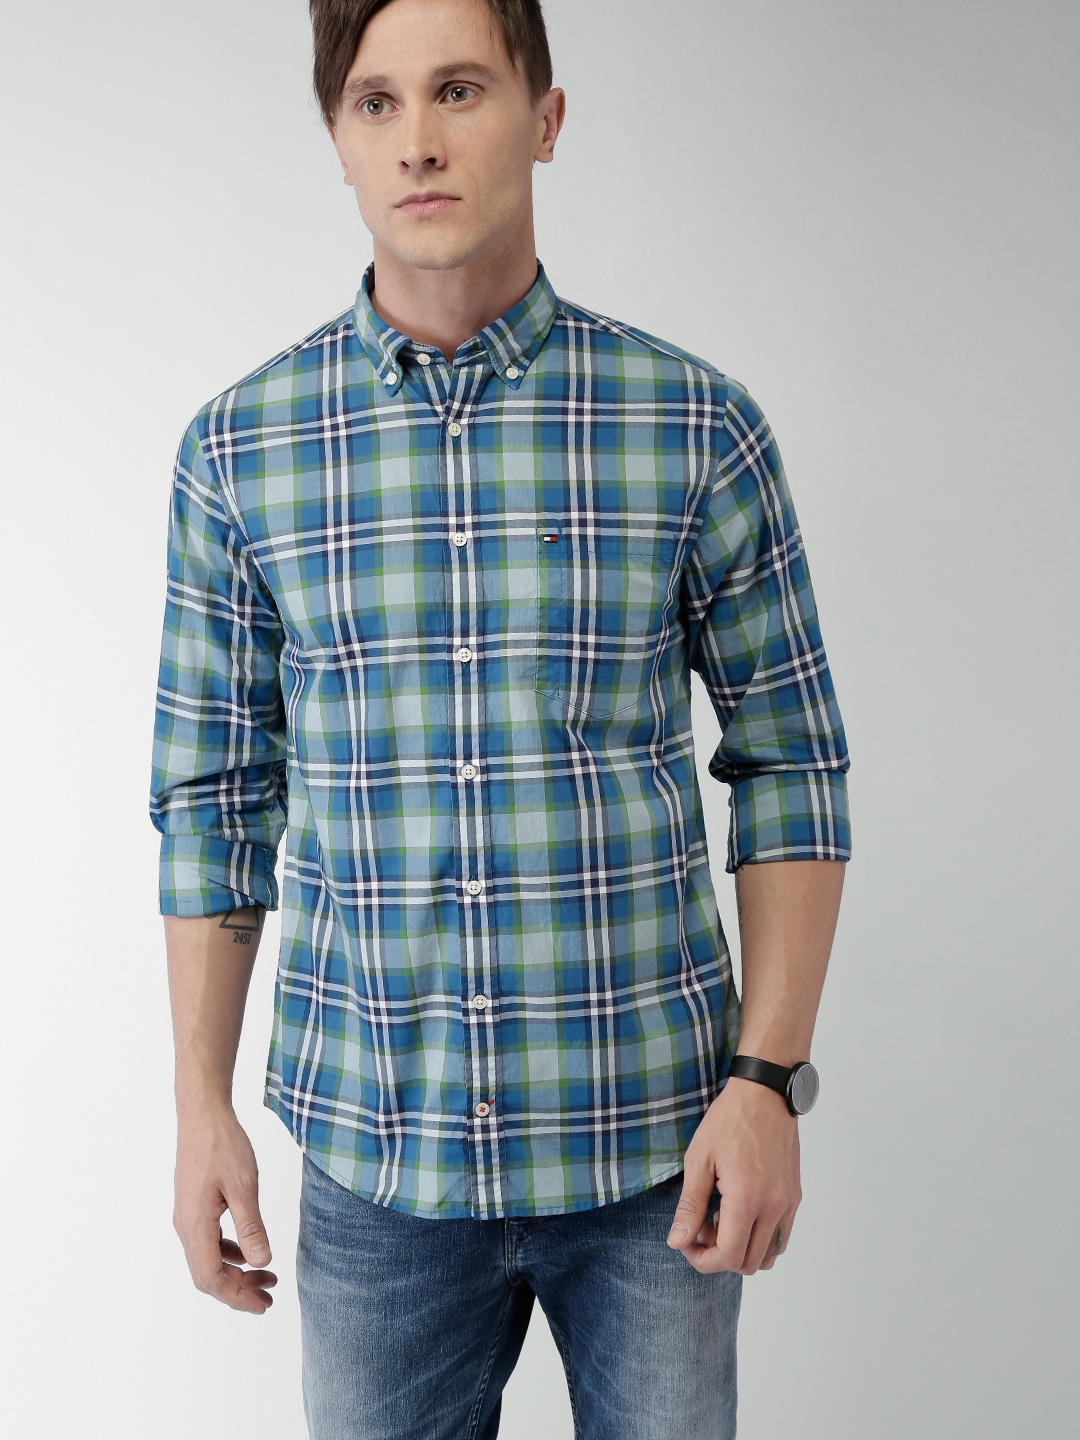 Buy Tommy Hilfiger Men Blue Checked Casual Shirt Shirts For Men